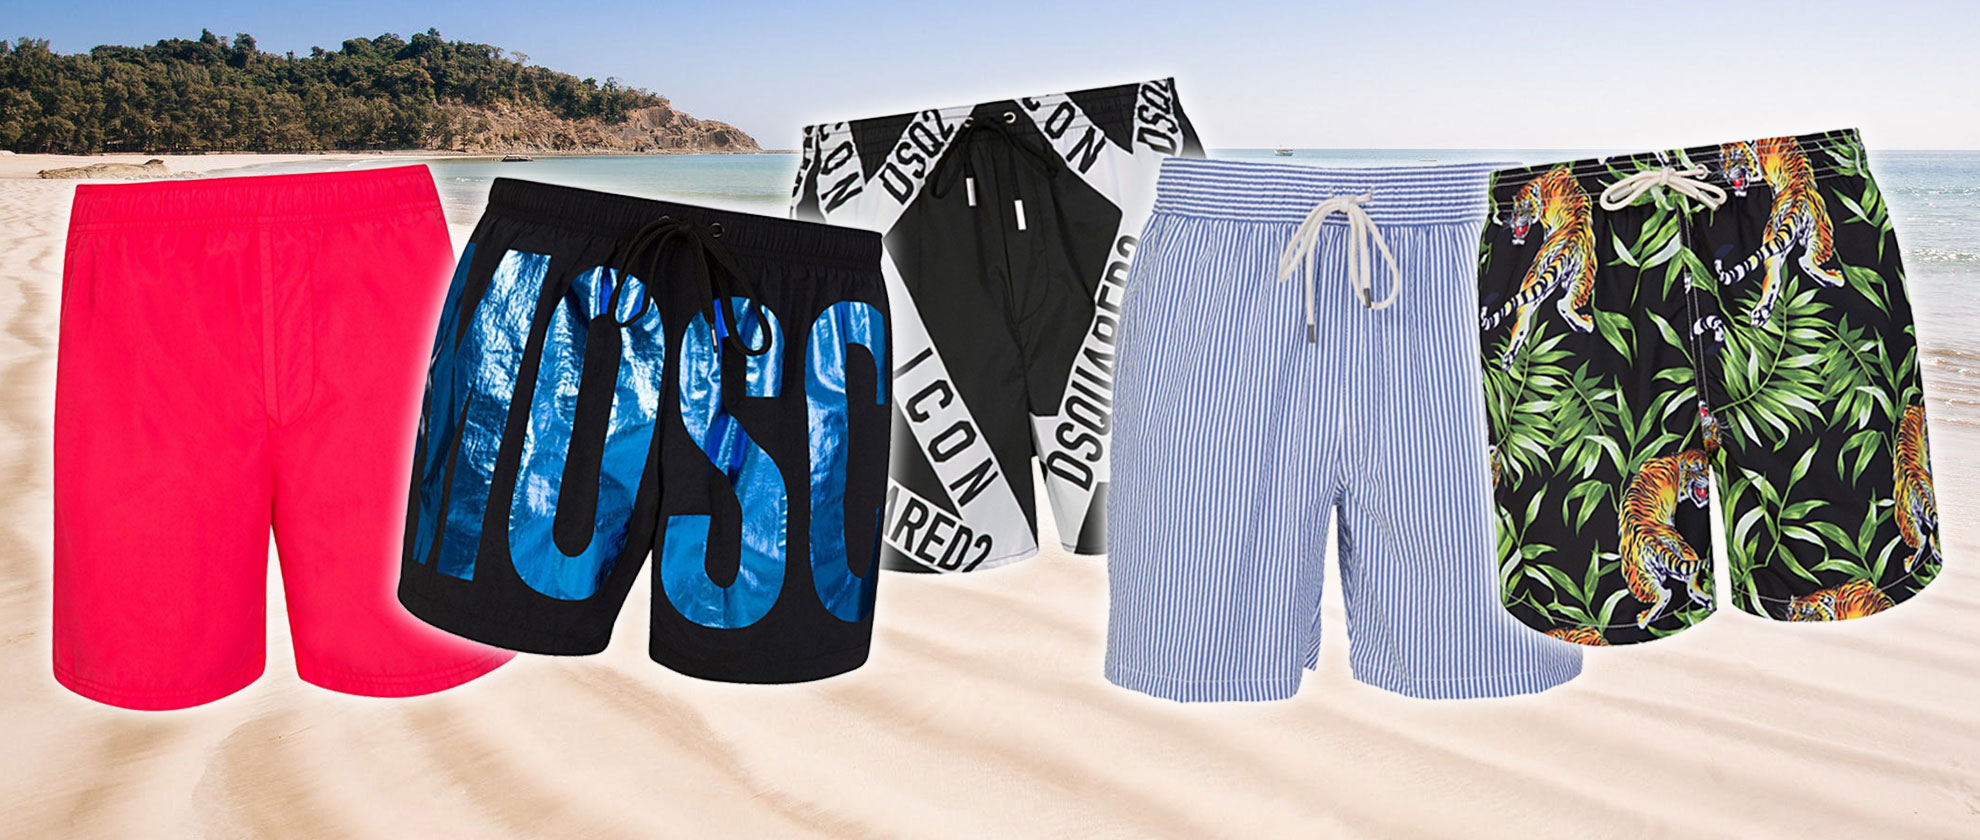 Men's most wanted sensational swimwear shorts